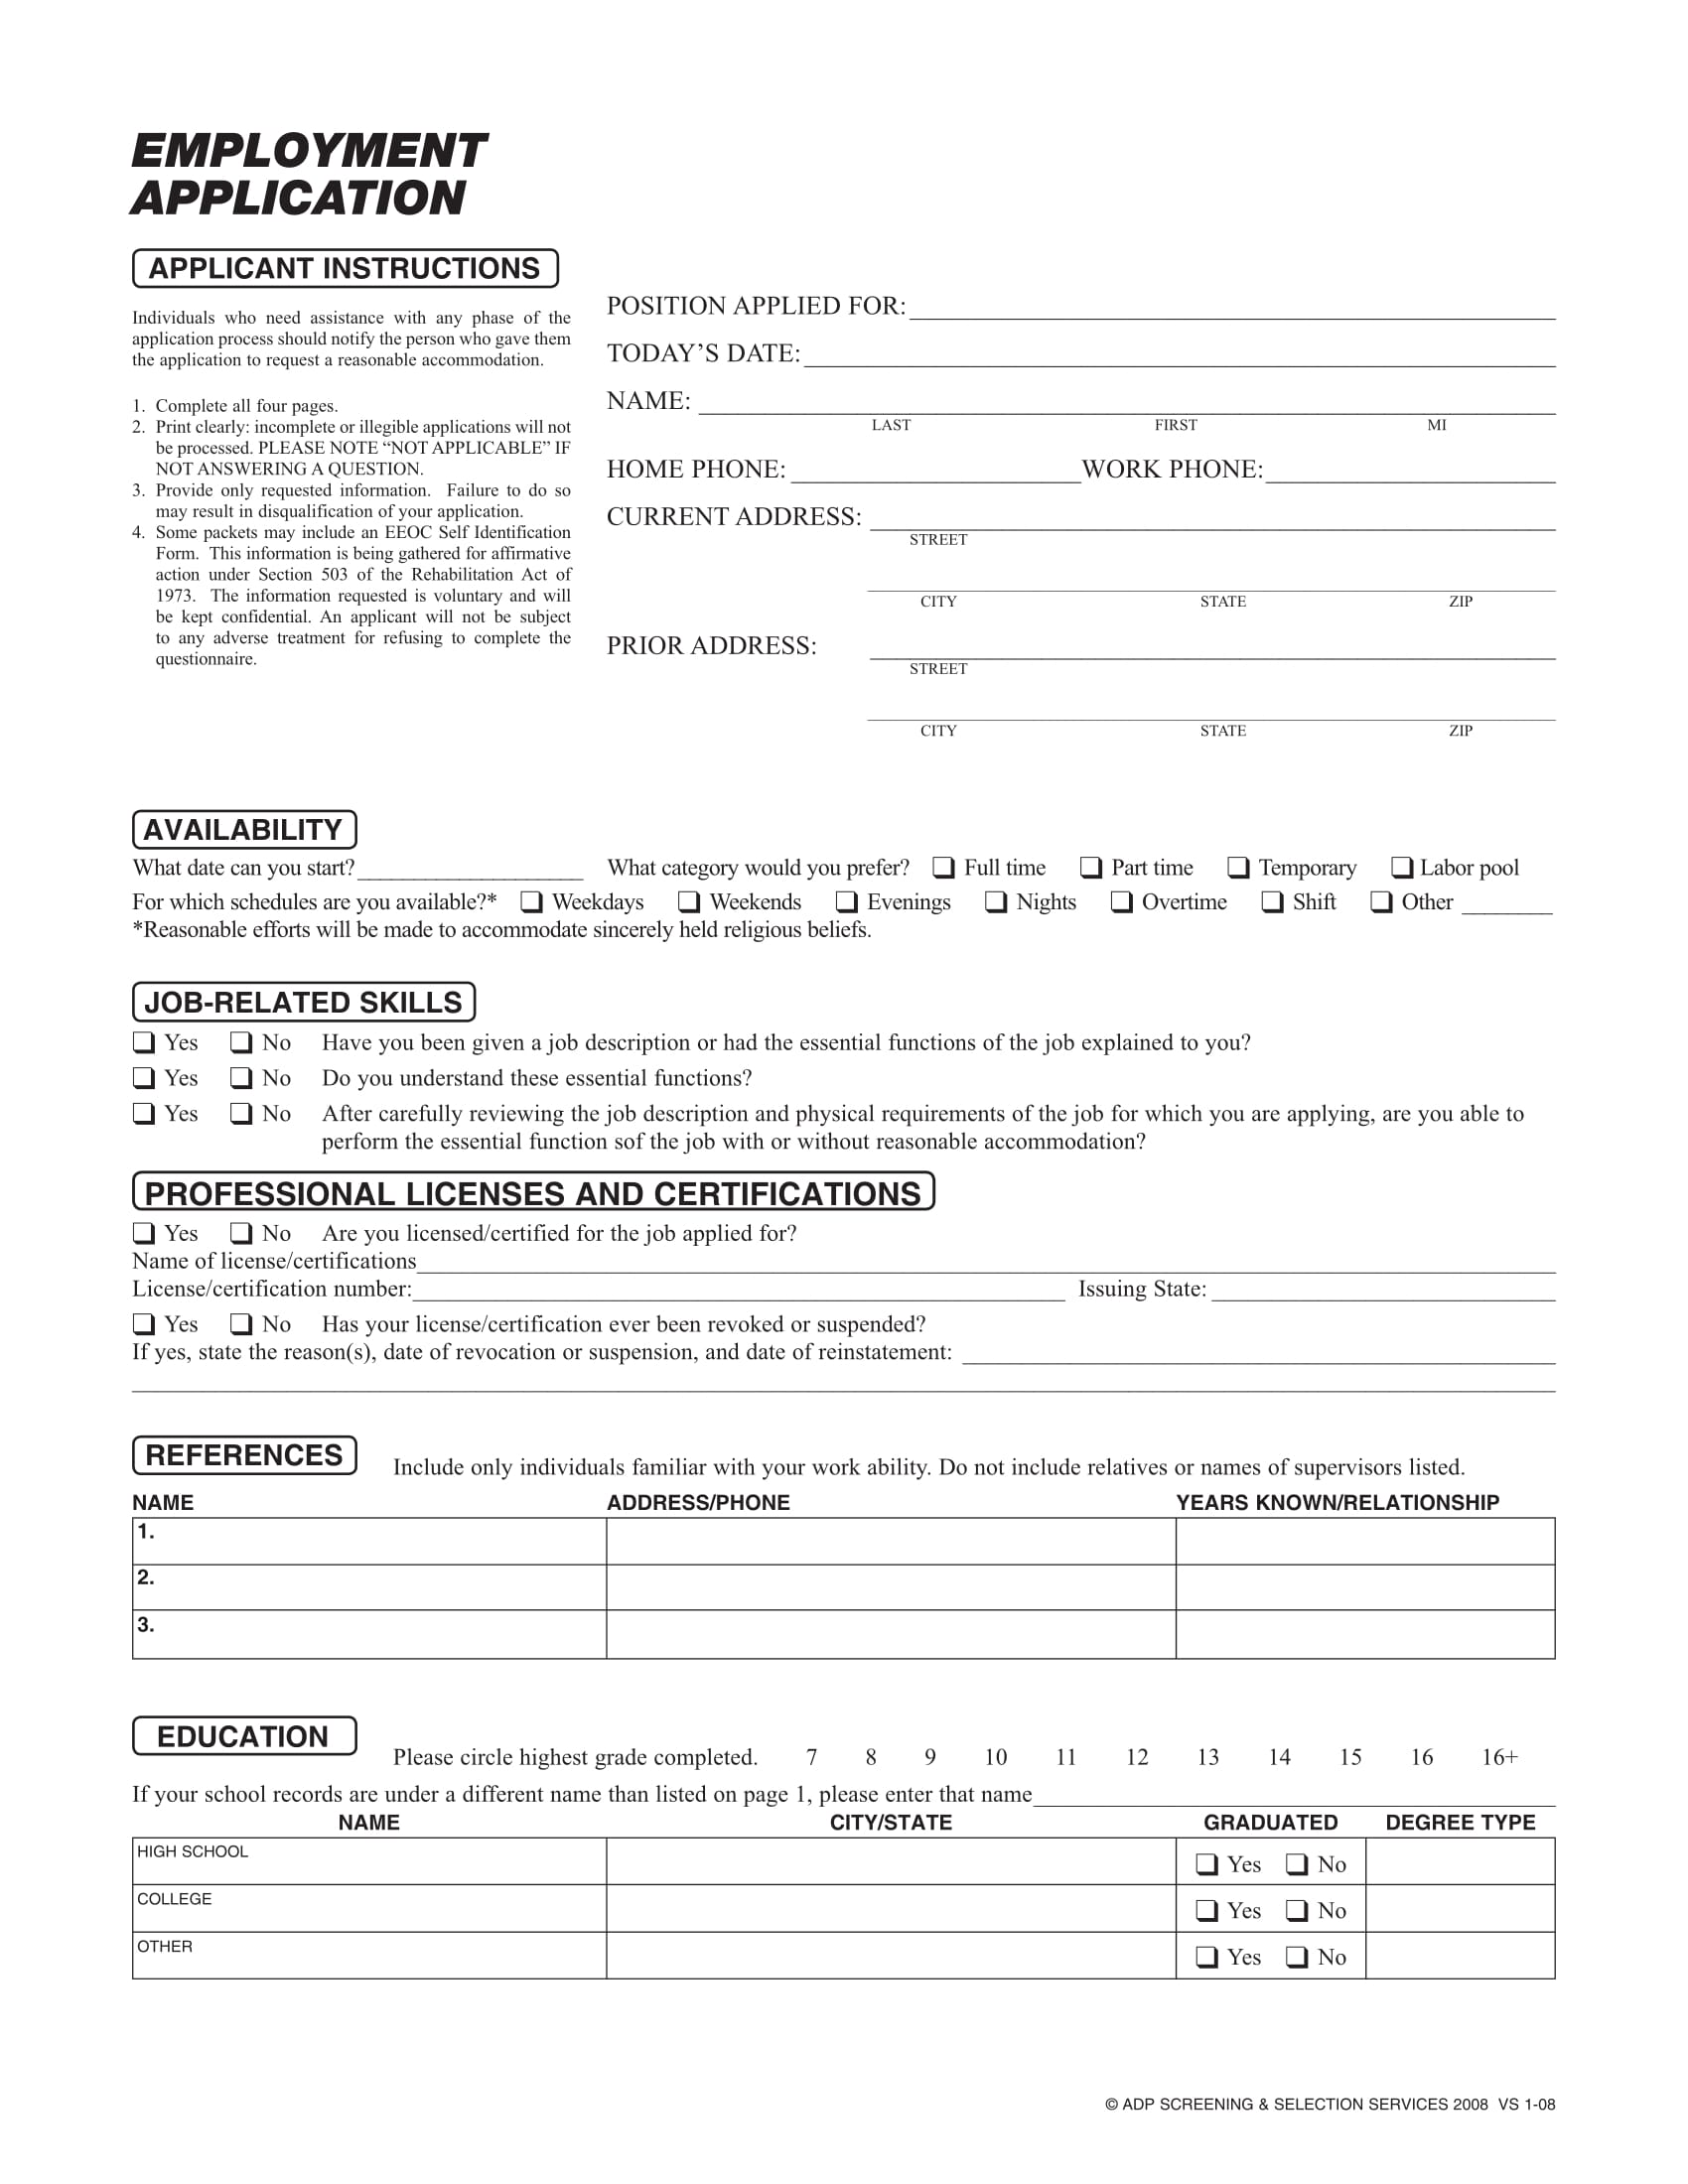 sandf application forms for employment